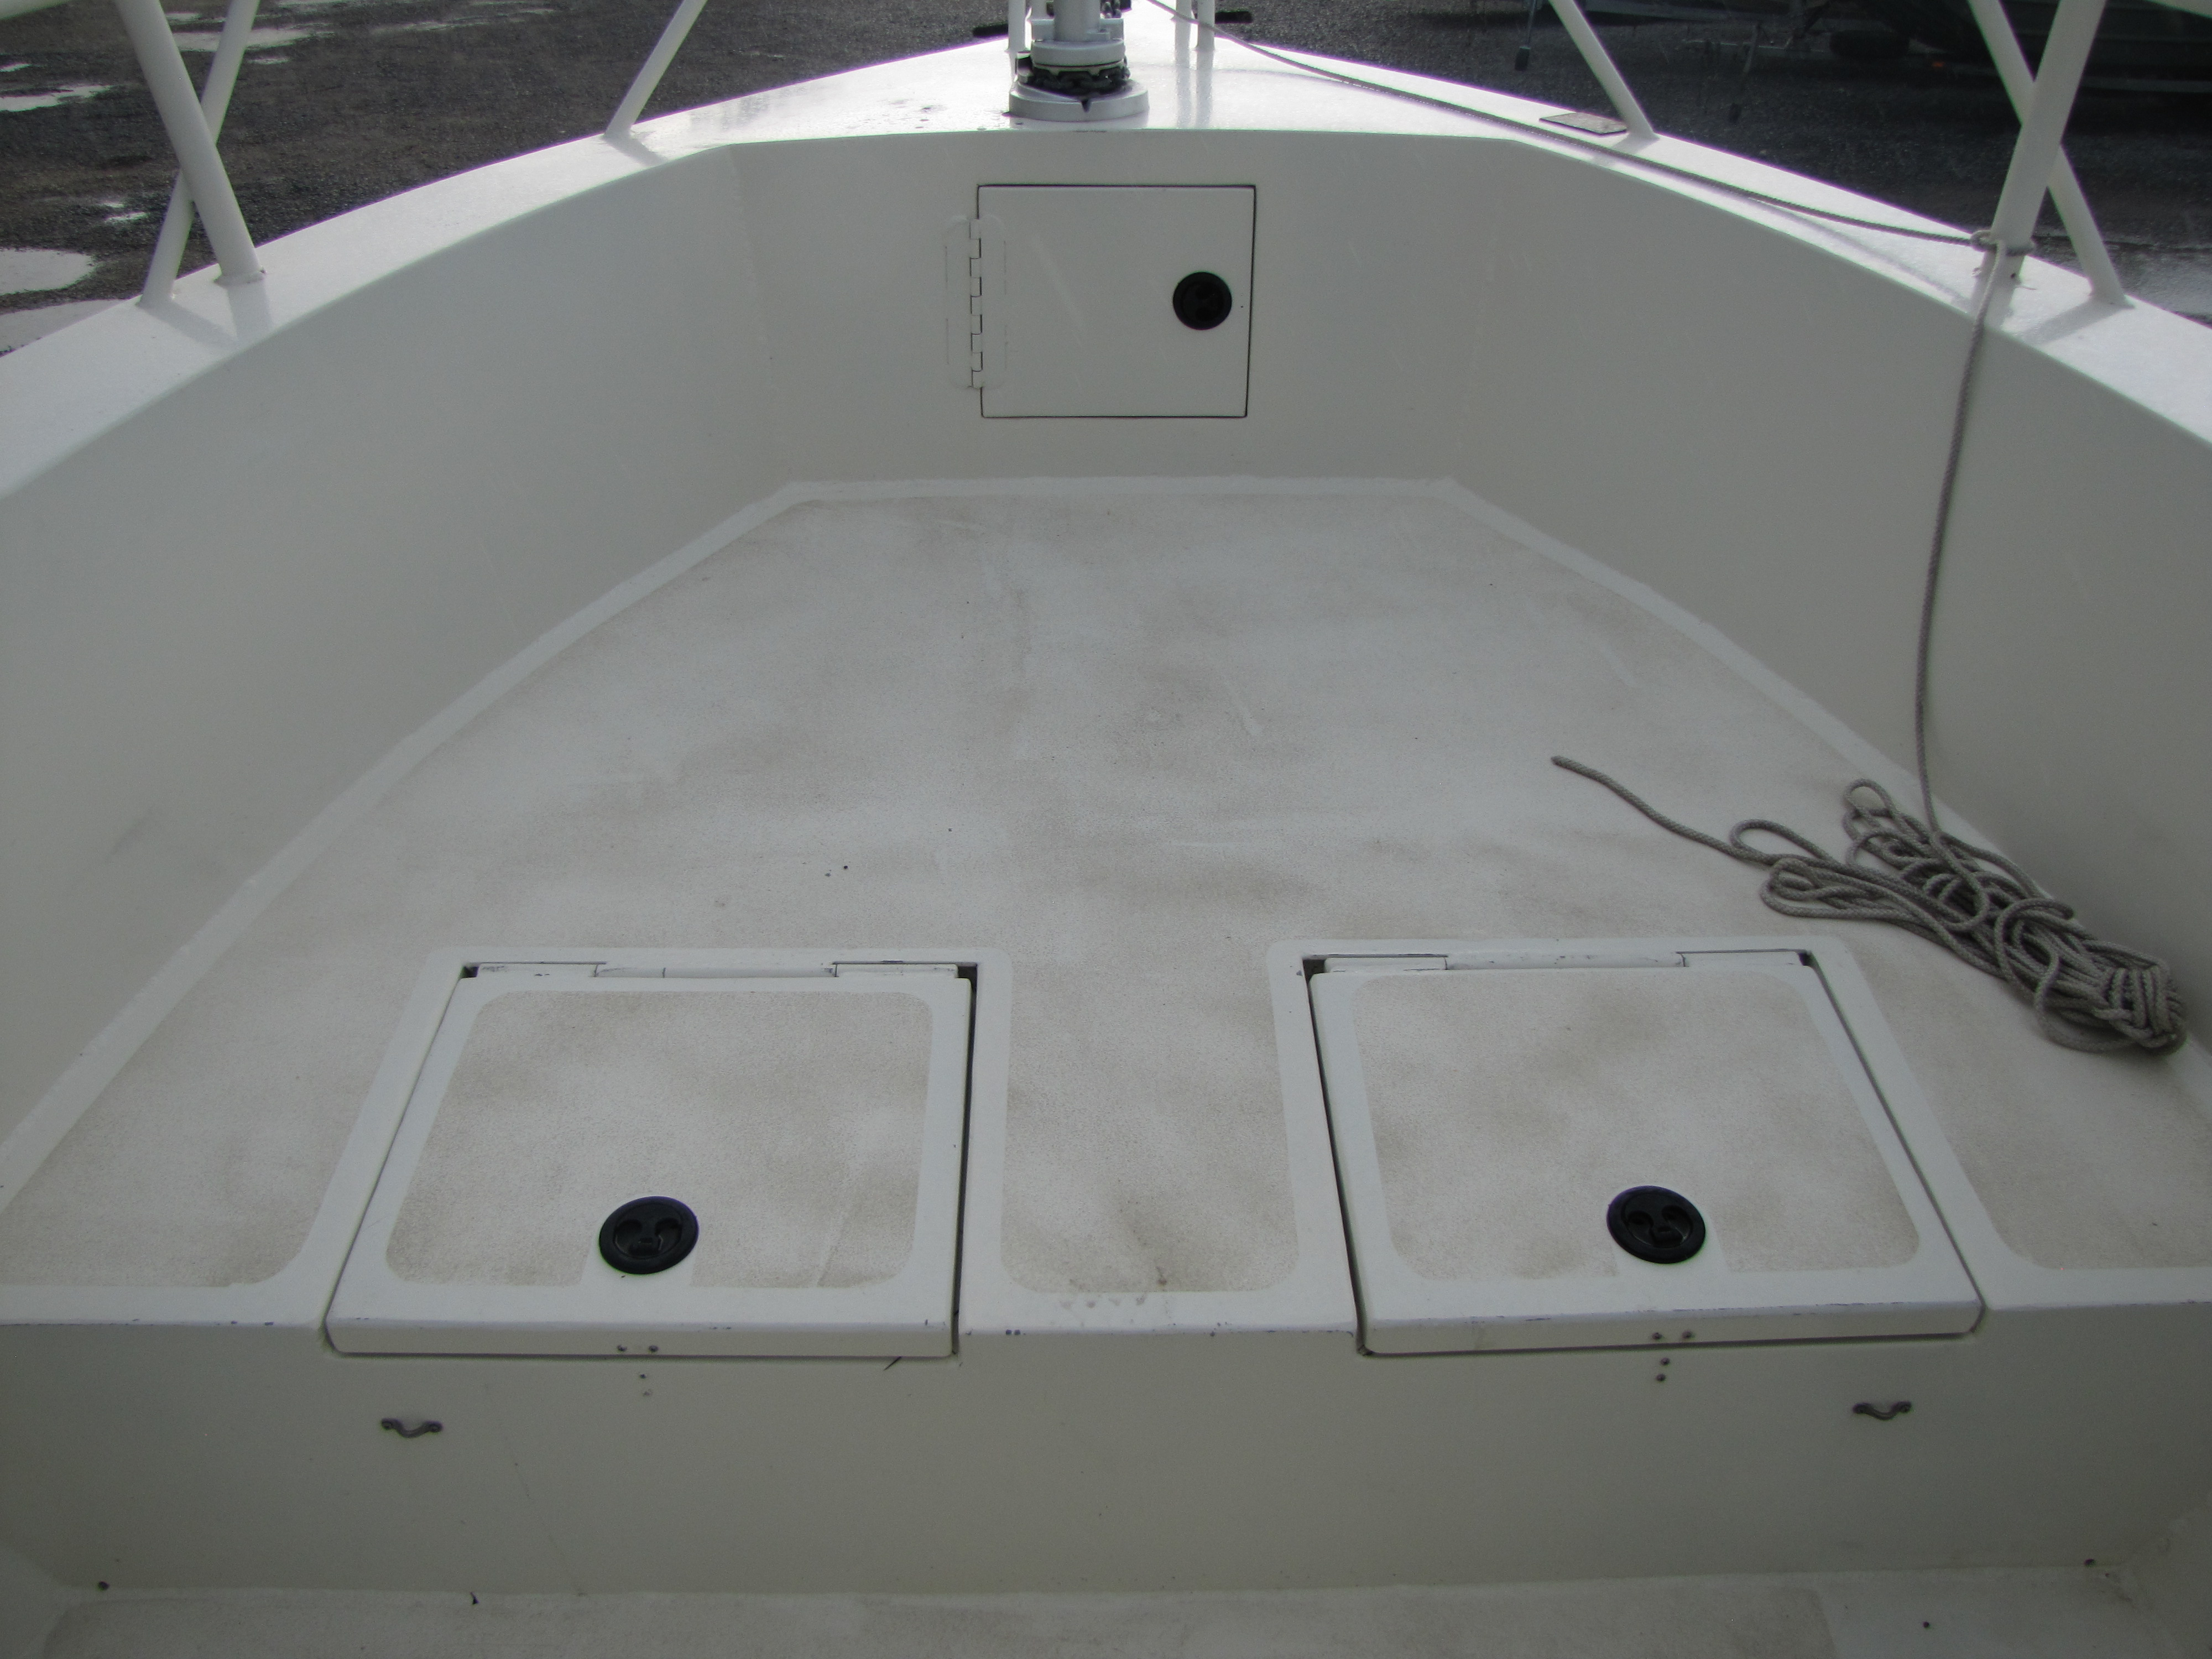 1985 Gravois boat for sale, model of the boat is 250CC & Image # 5 of 6